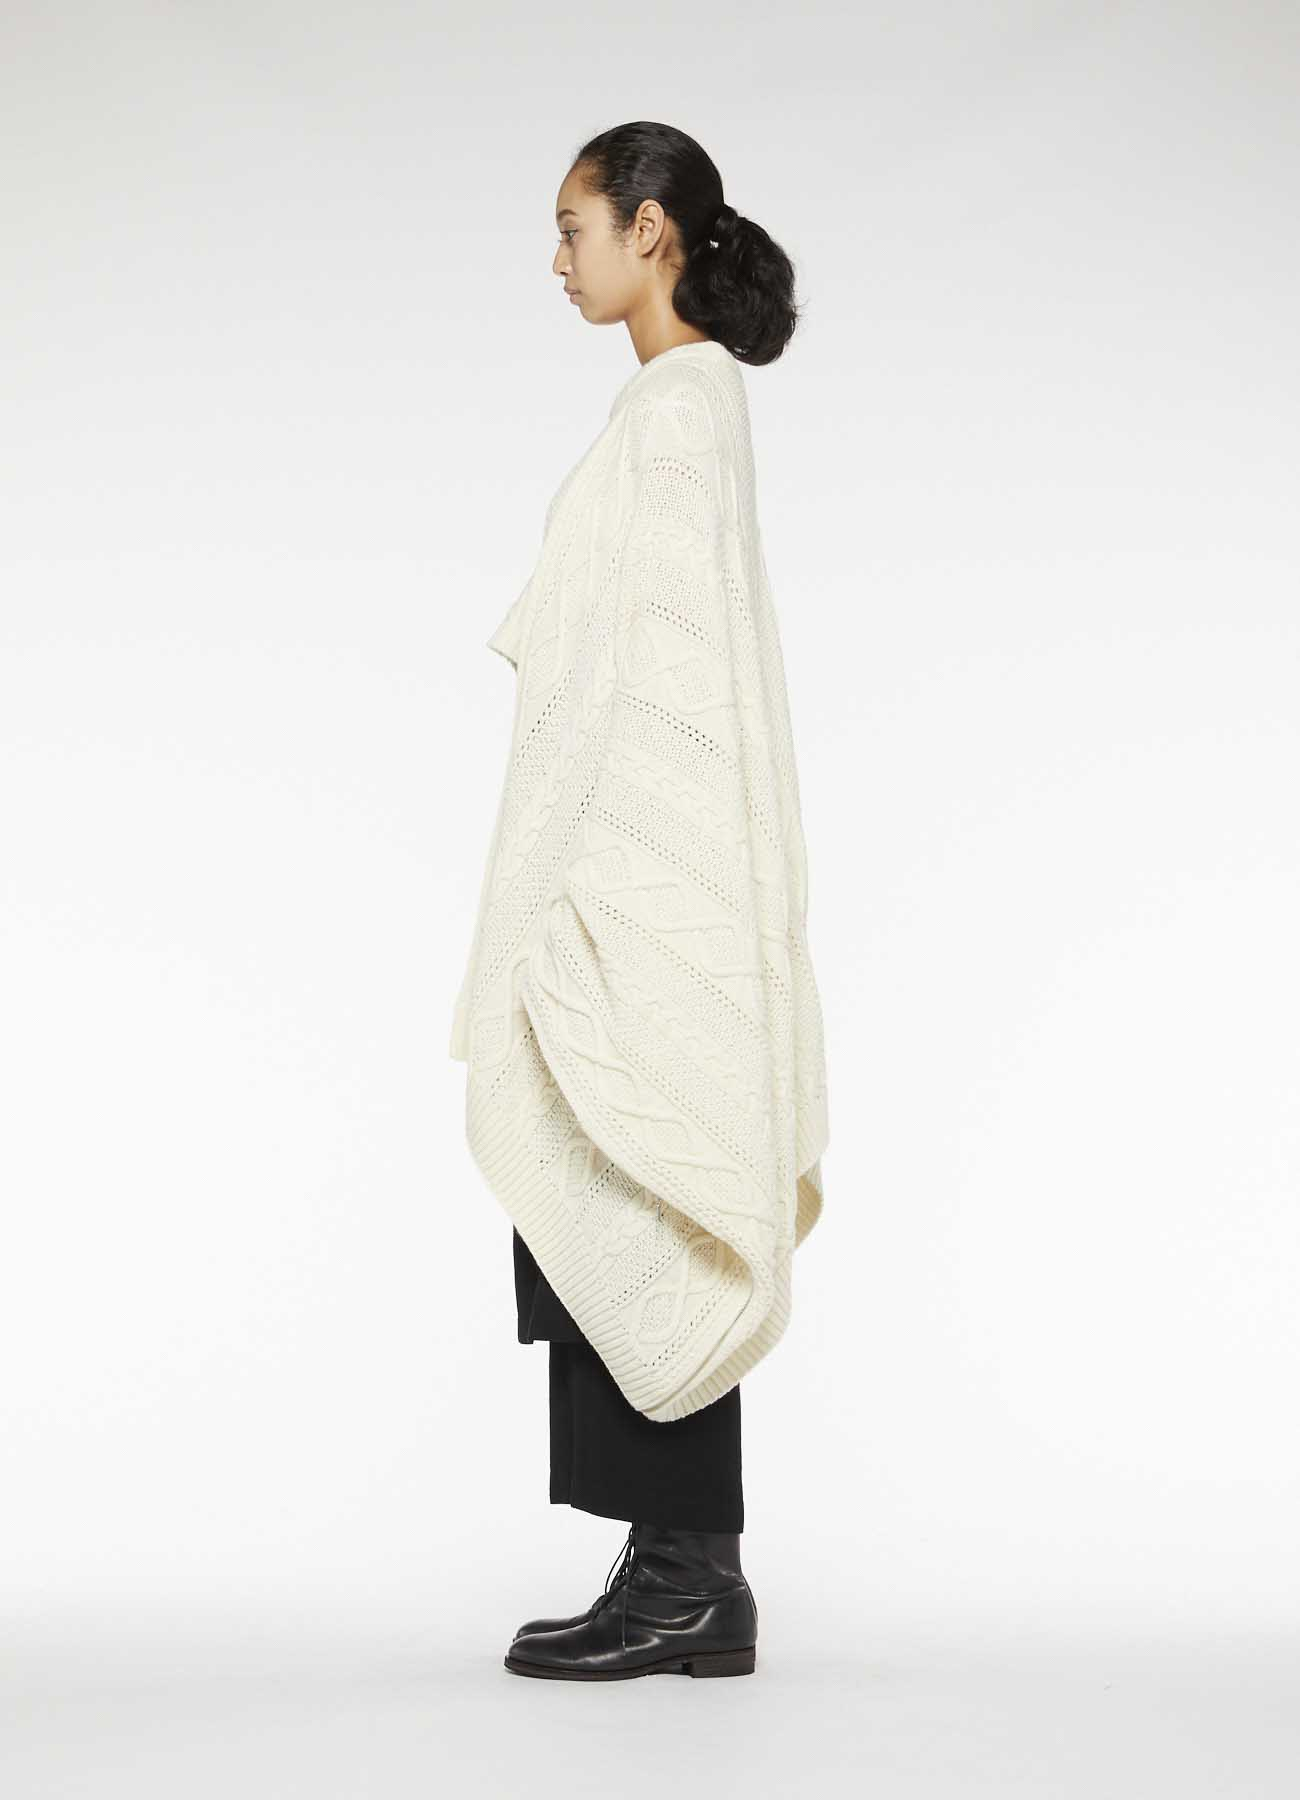 RISMATbyY's WOOL ALAN KNITTING CAPE